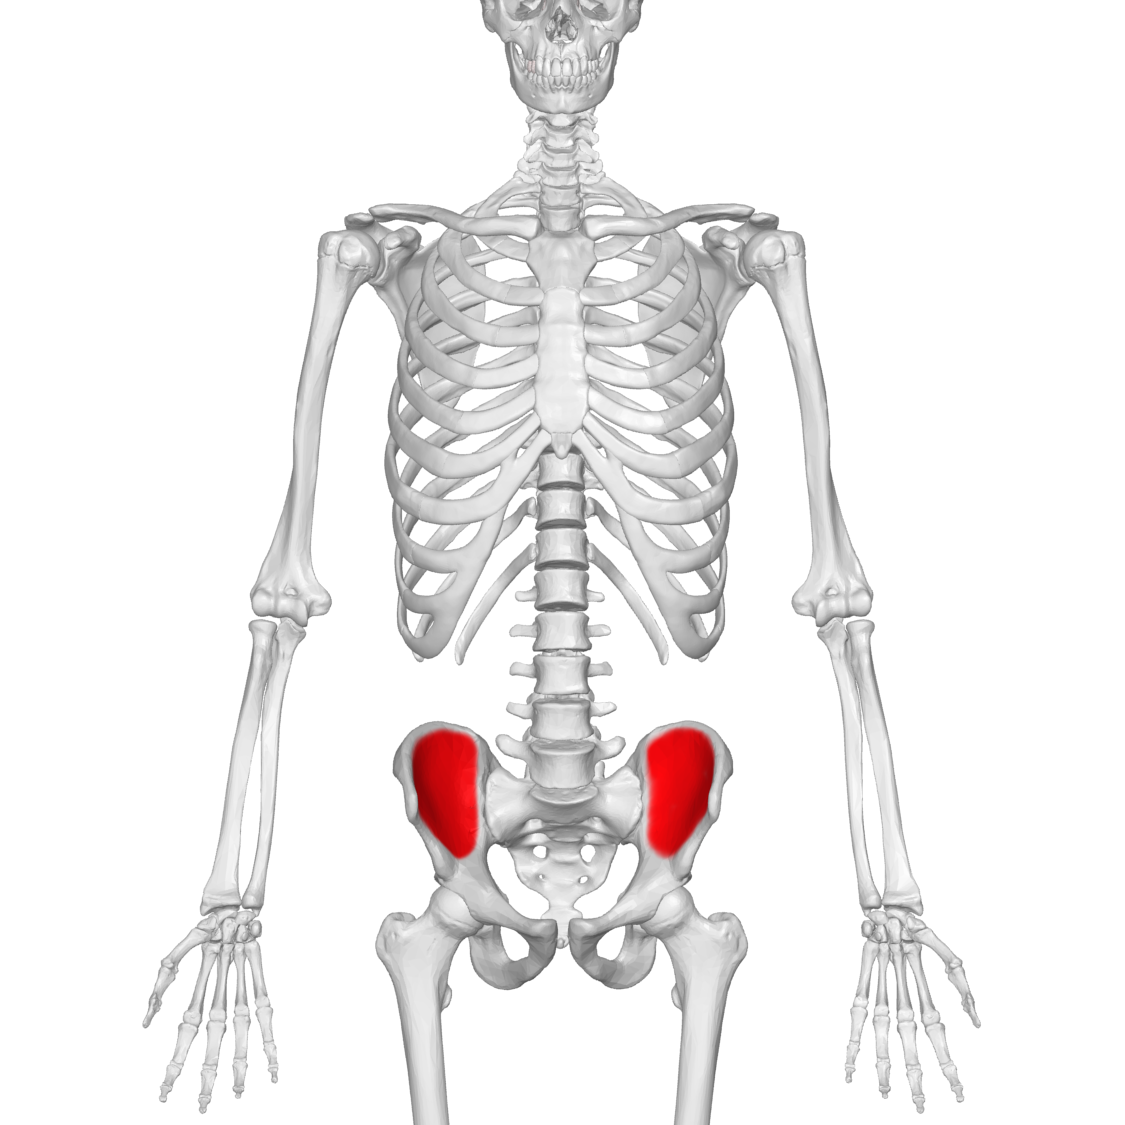 File:Iliac fossa 01 anterior view.png - Wikimedia Commons